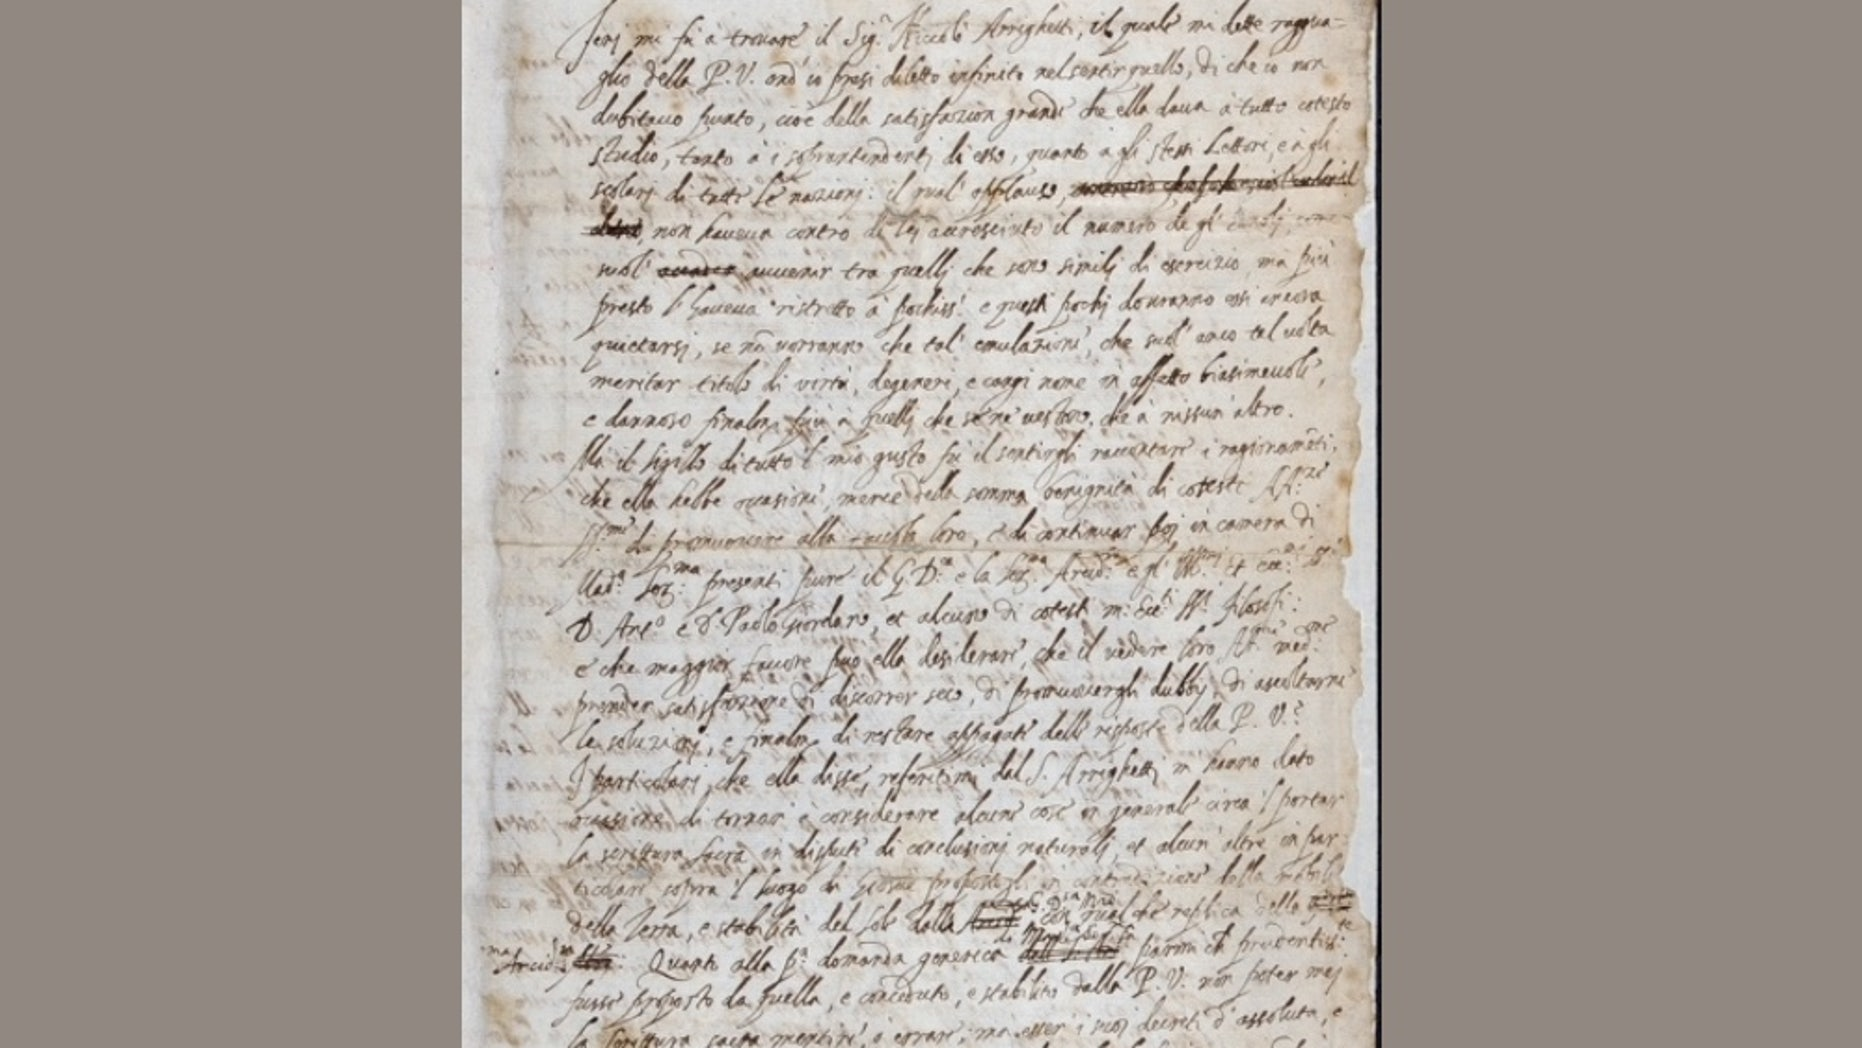 The long-lost letter from Galileo Galilei, dated Dec. 21, 1613, addressed to Padre Benedetto Castelli. The letter was found in the Royal Society archives.